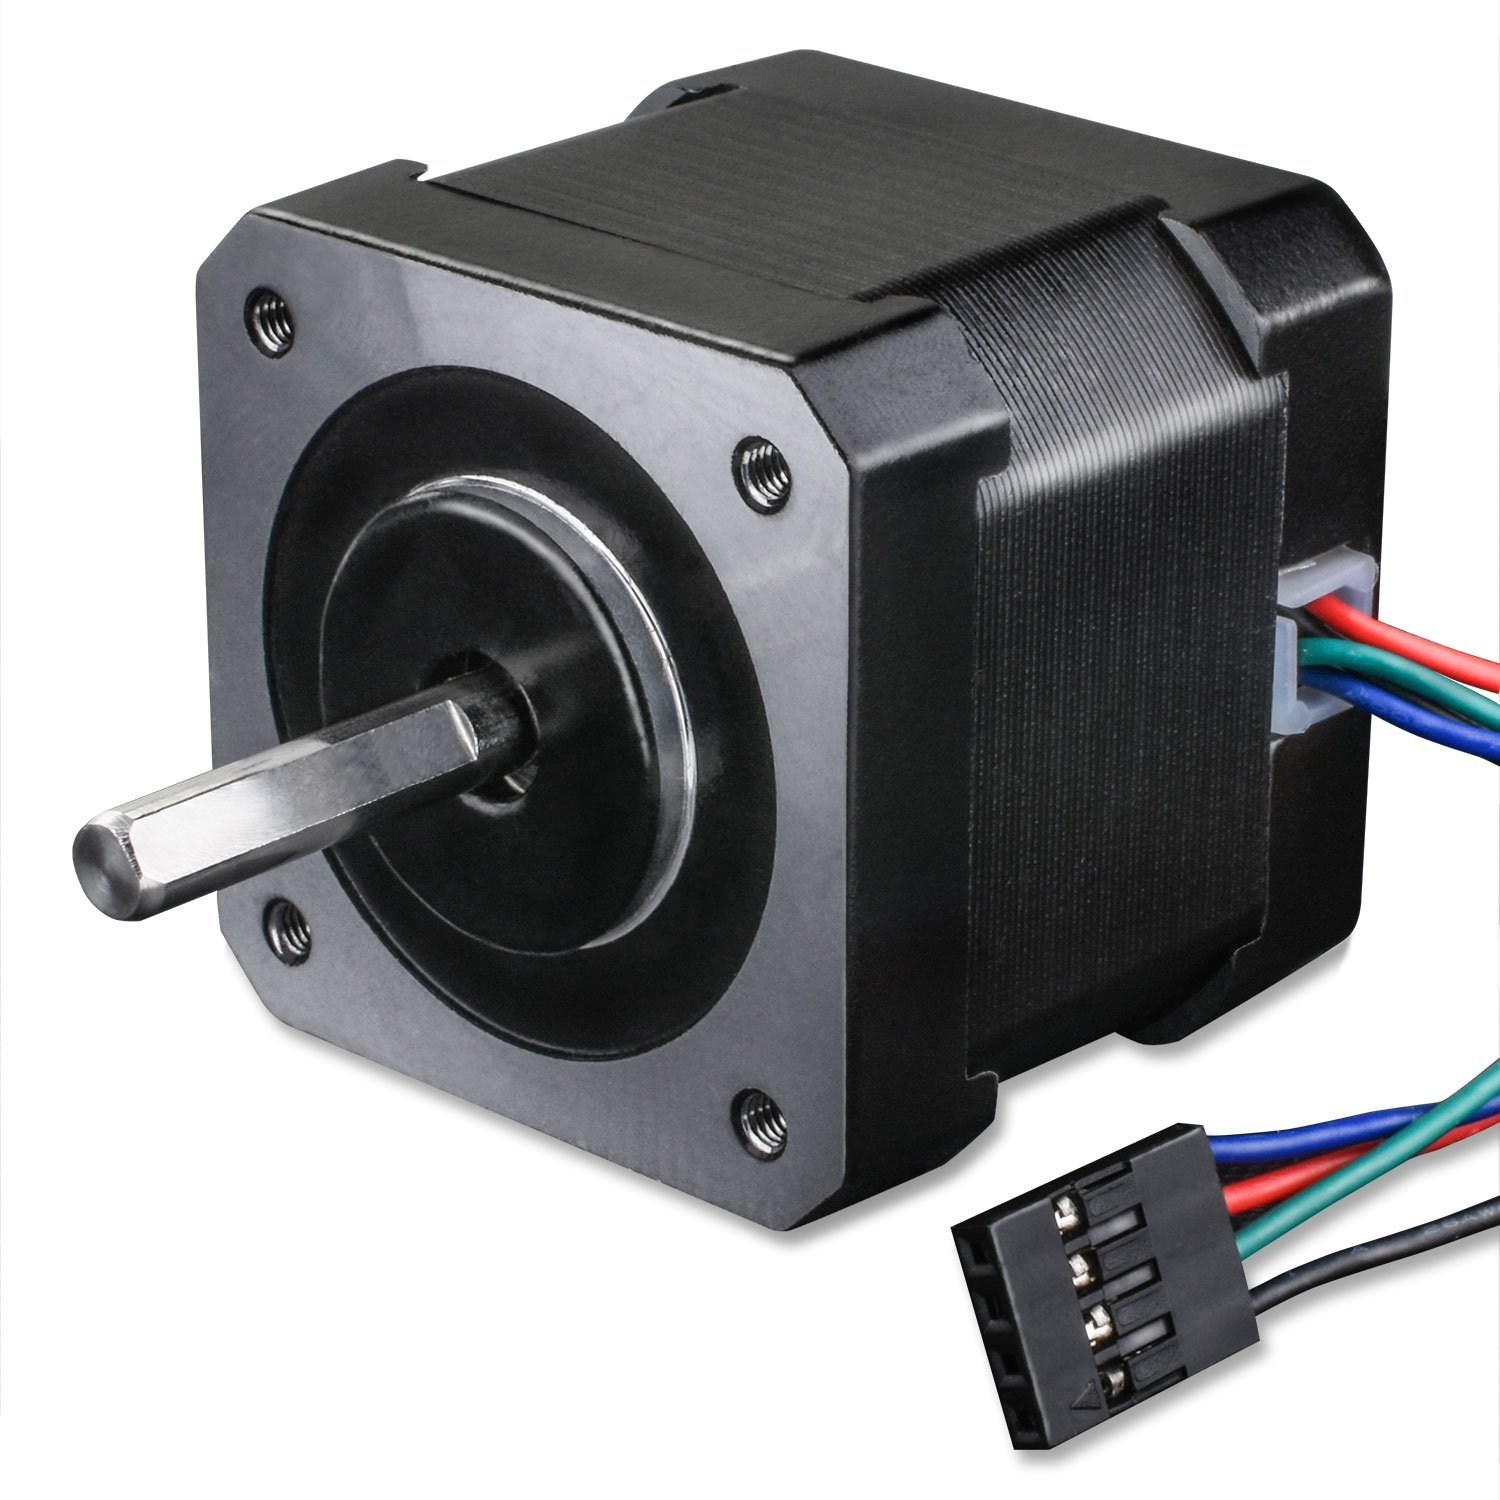 Nema 17 Stepper Motor Quimat Stepper Motor Bipolar 2A 64oz.in 38mm Body 4-Lead w// 1m Cable and Connector with Mounting Bracket for 3D Printer Hobby CNC 45Ncm